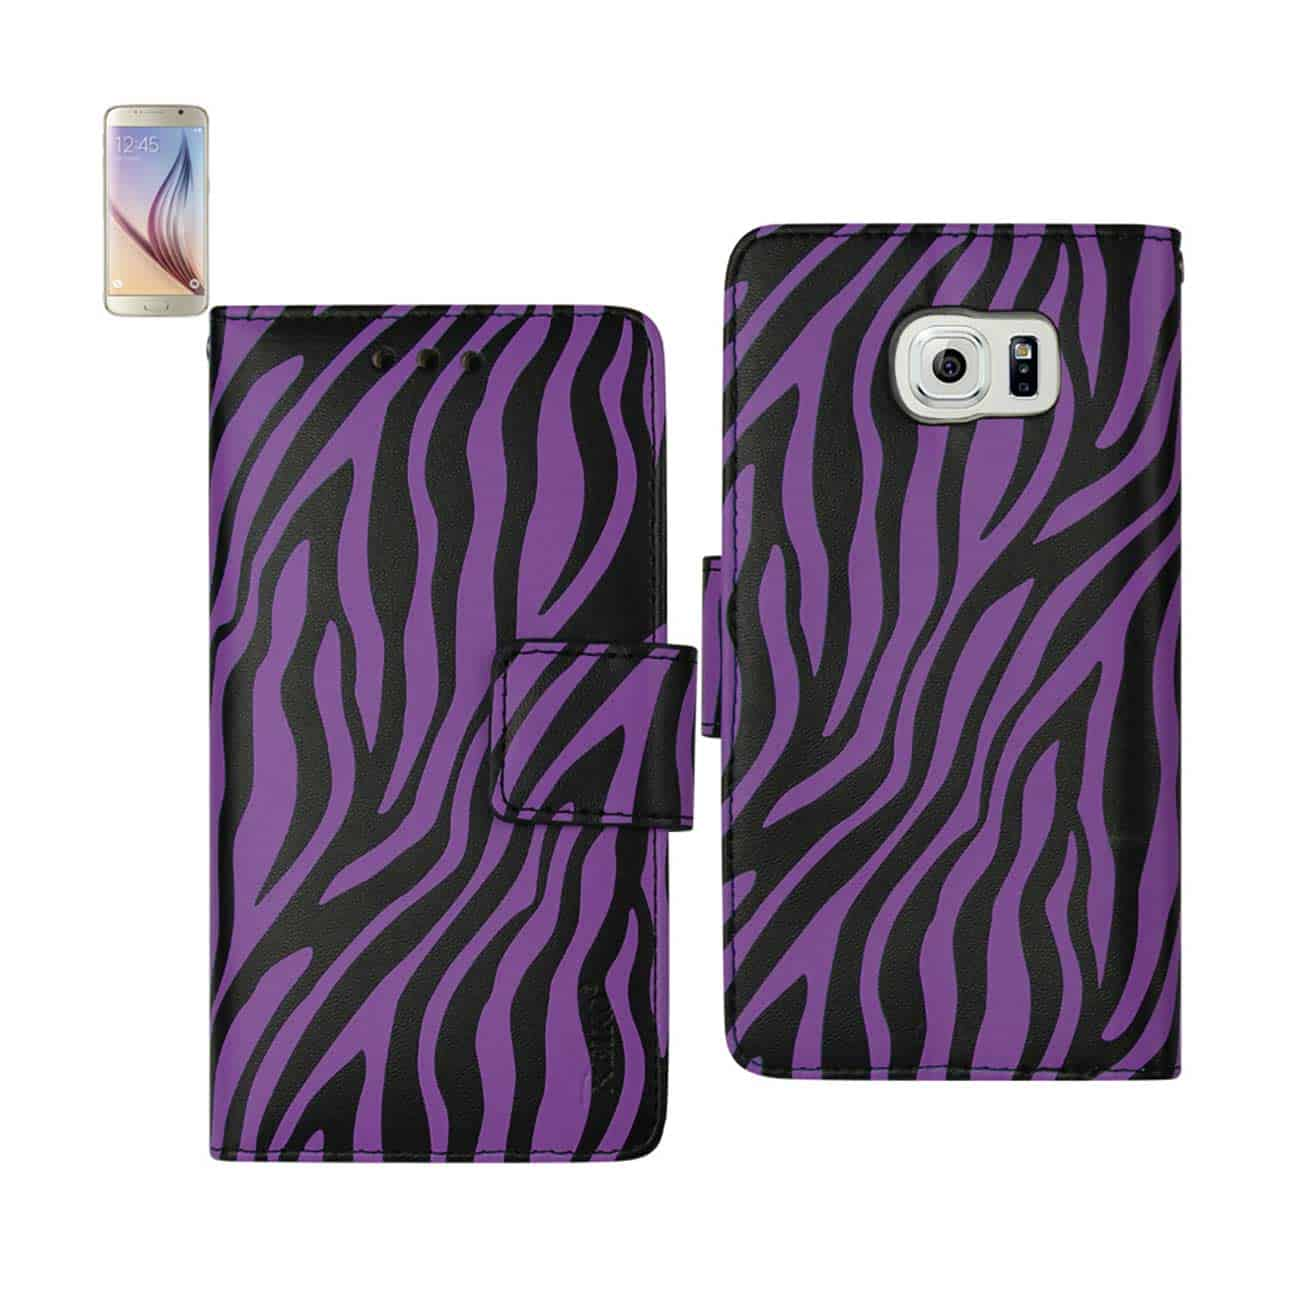 SAMSUNG GALAXY S6 EDGE 3-IN-1 ANIMAL ZEBRA PRINT WALLET CASE IN PURPLE